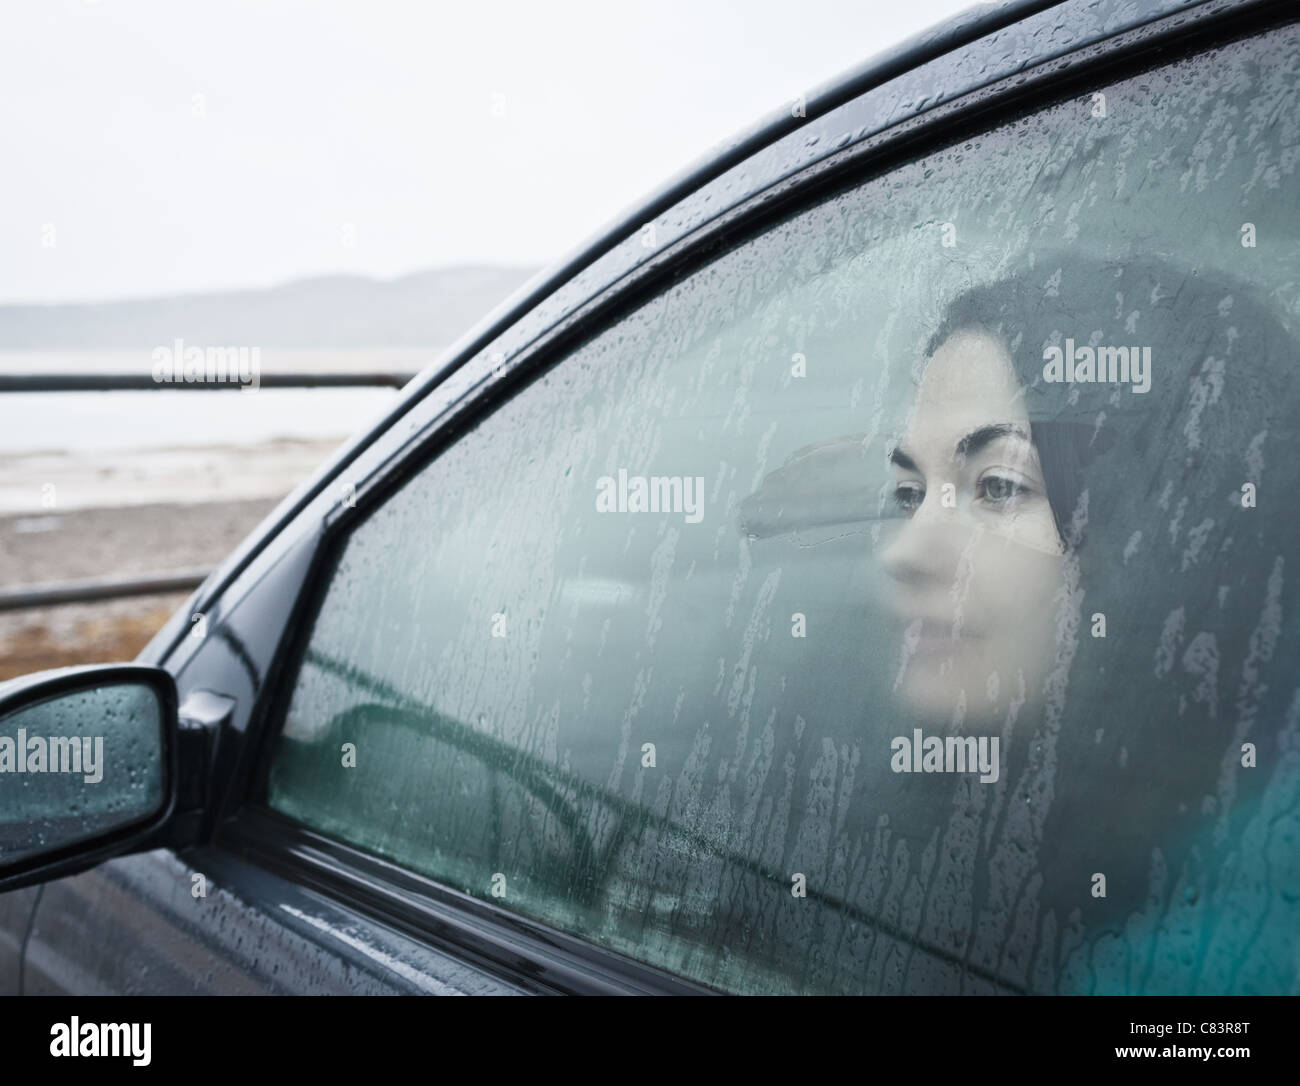 Teenage girl looking out wet car window - Stock Image